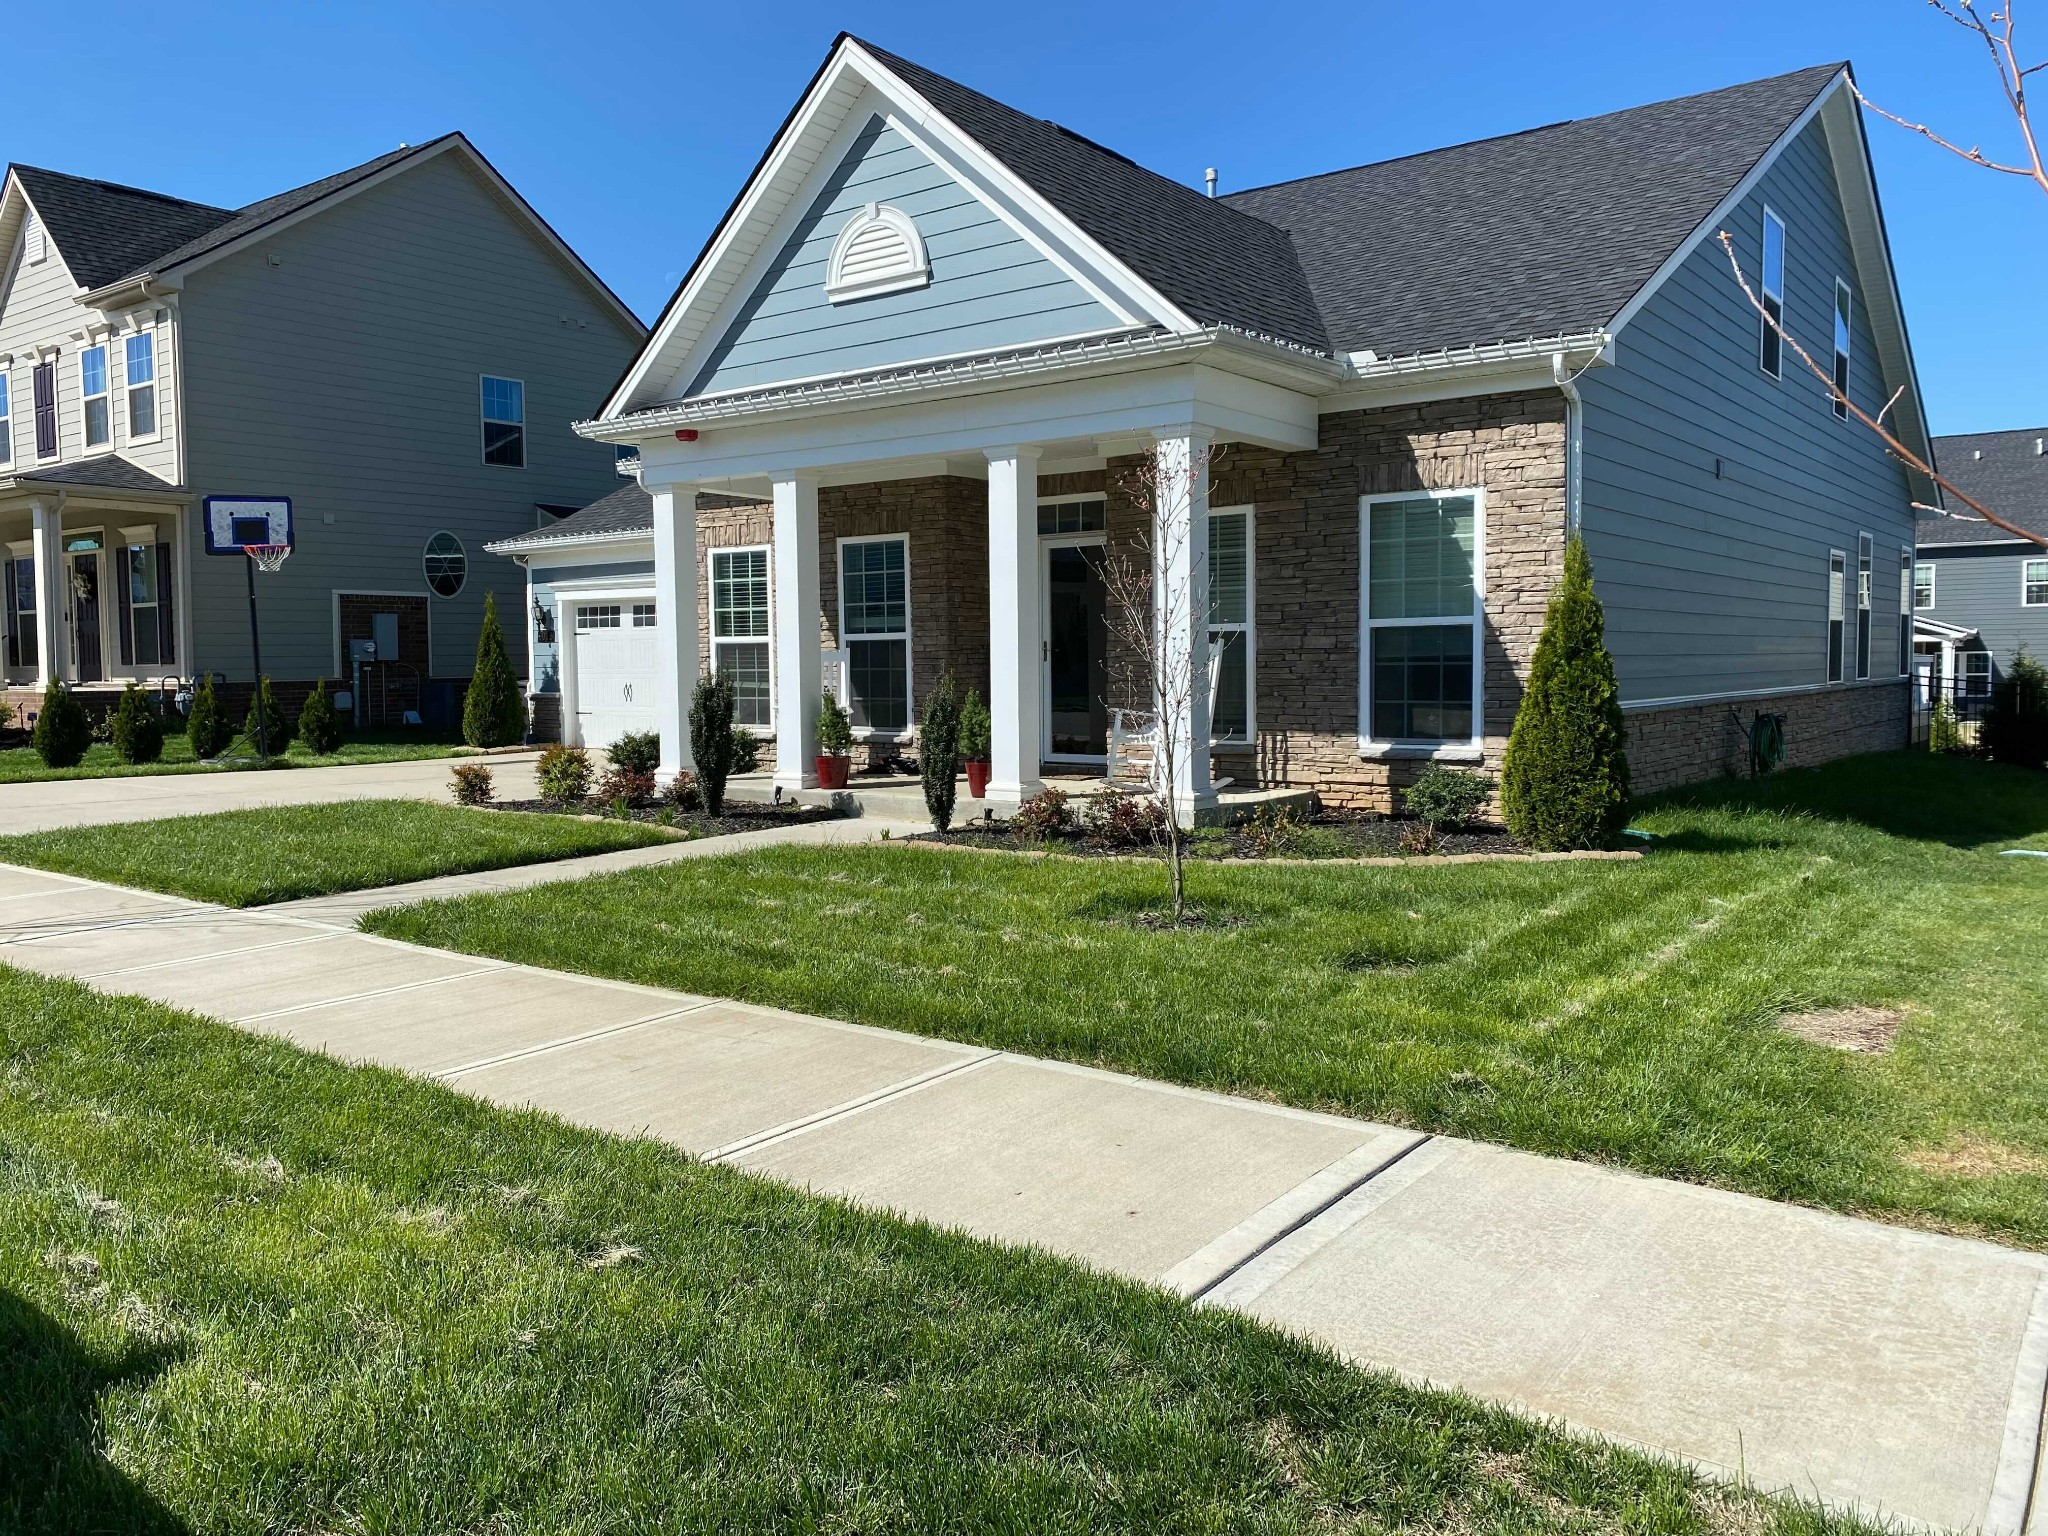 6025 Huntmere Ave Property Photo - Franklin, TN real estate listing